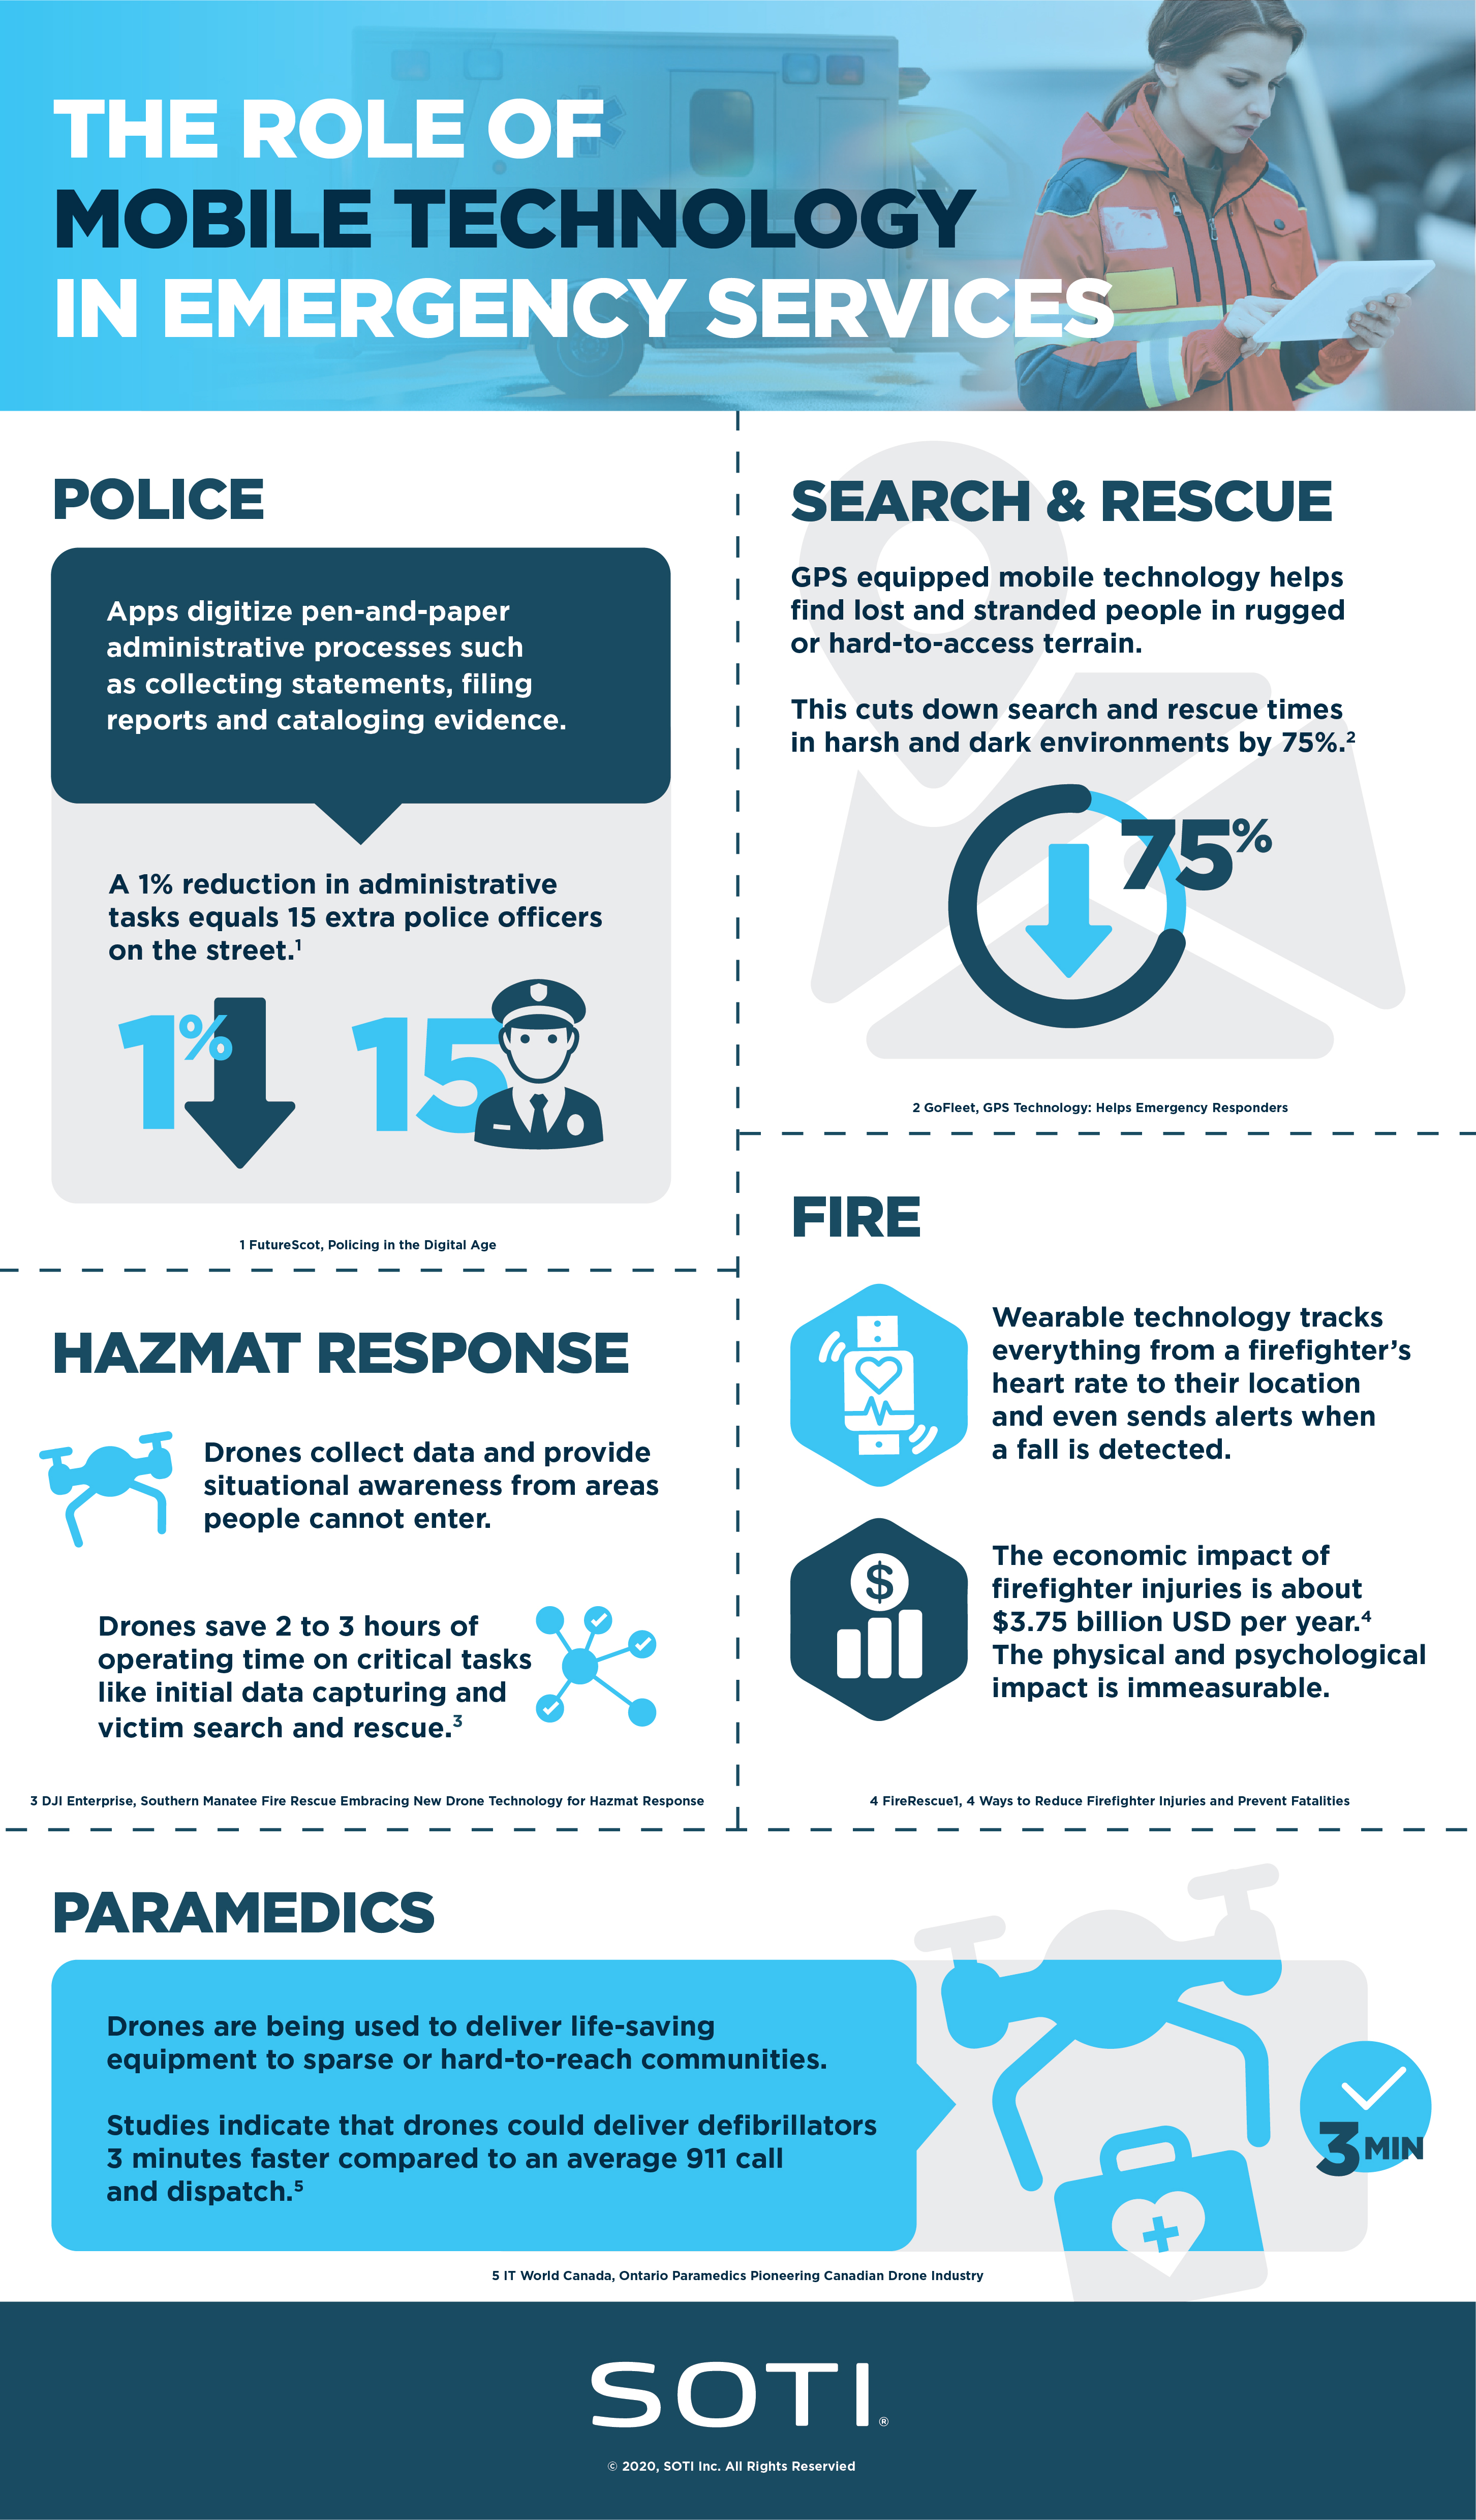 The Role of Mobile Technology in Emergency Services Infographic